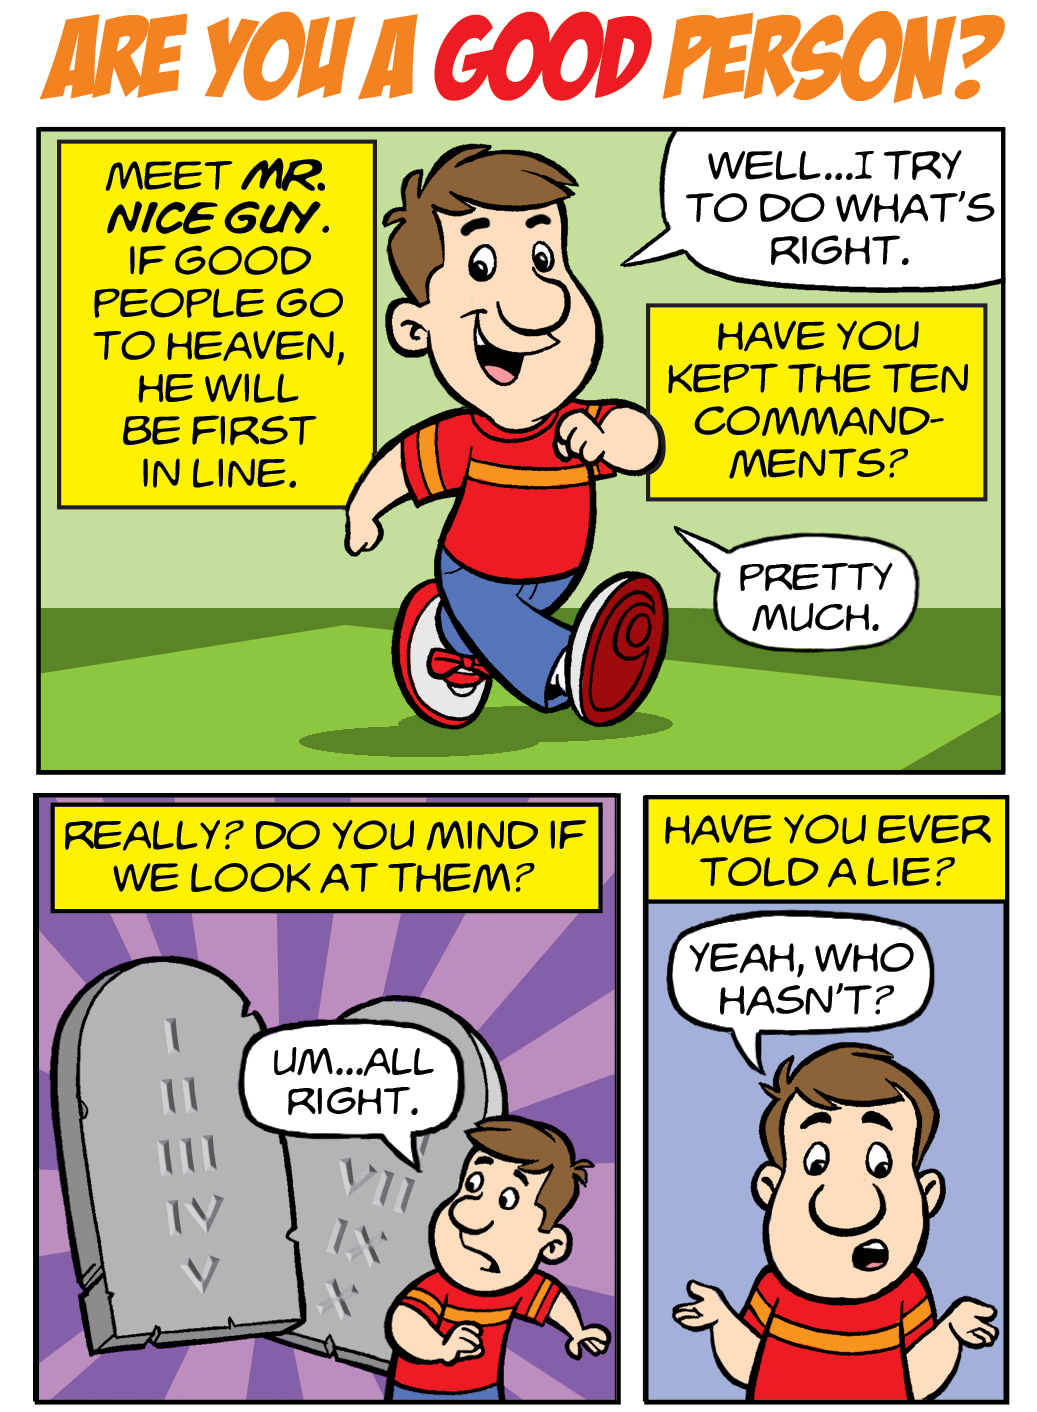 Are You A Good Person? (English version) - Free Cartoon